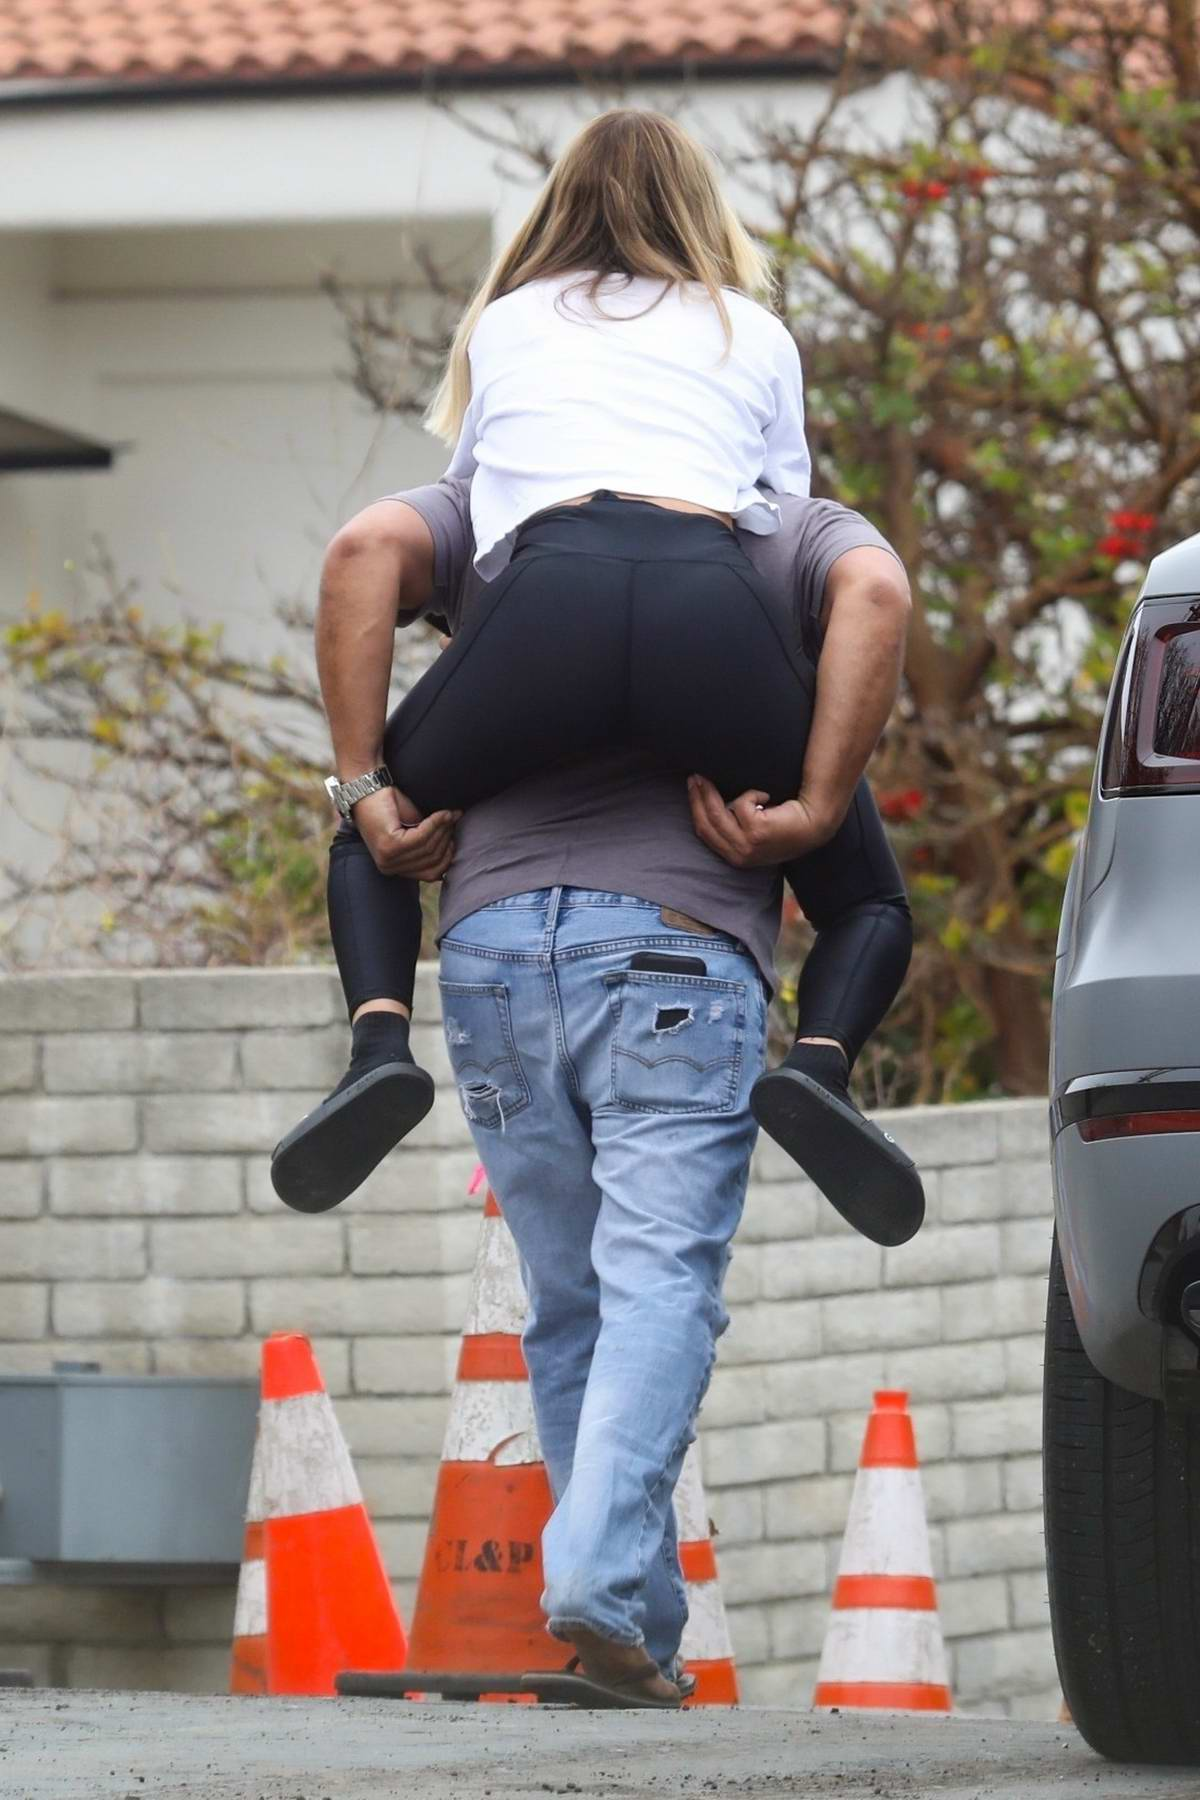 Sofia Richie wears a white tee and black leggings while out piggybacking on a friend in Malibu, California